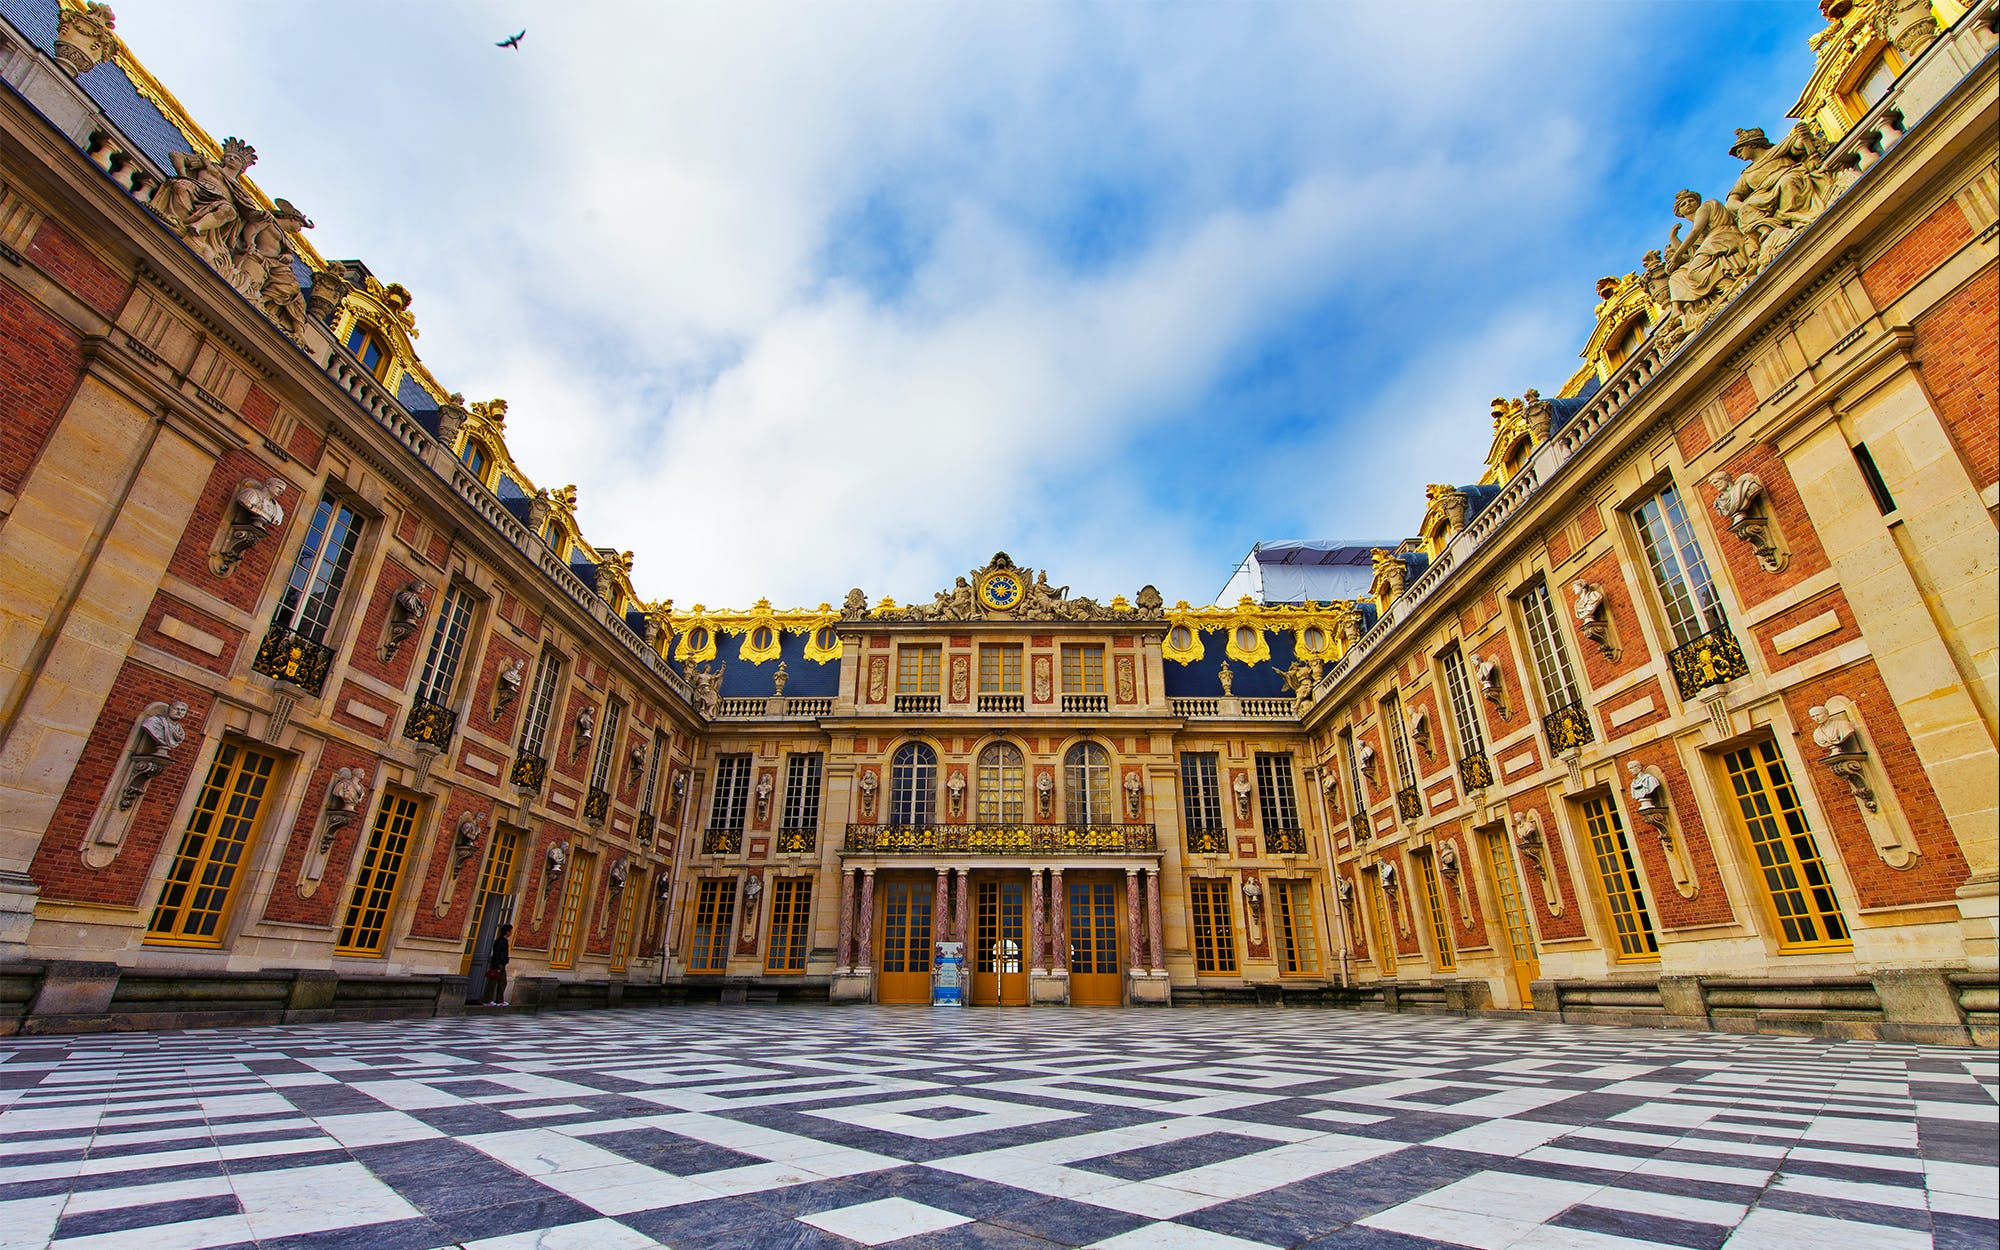 Priority Access to Palace of Versailles & Gardens - Guided Tour from Paris